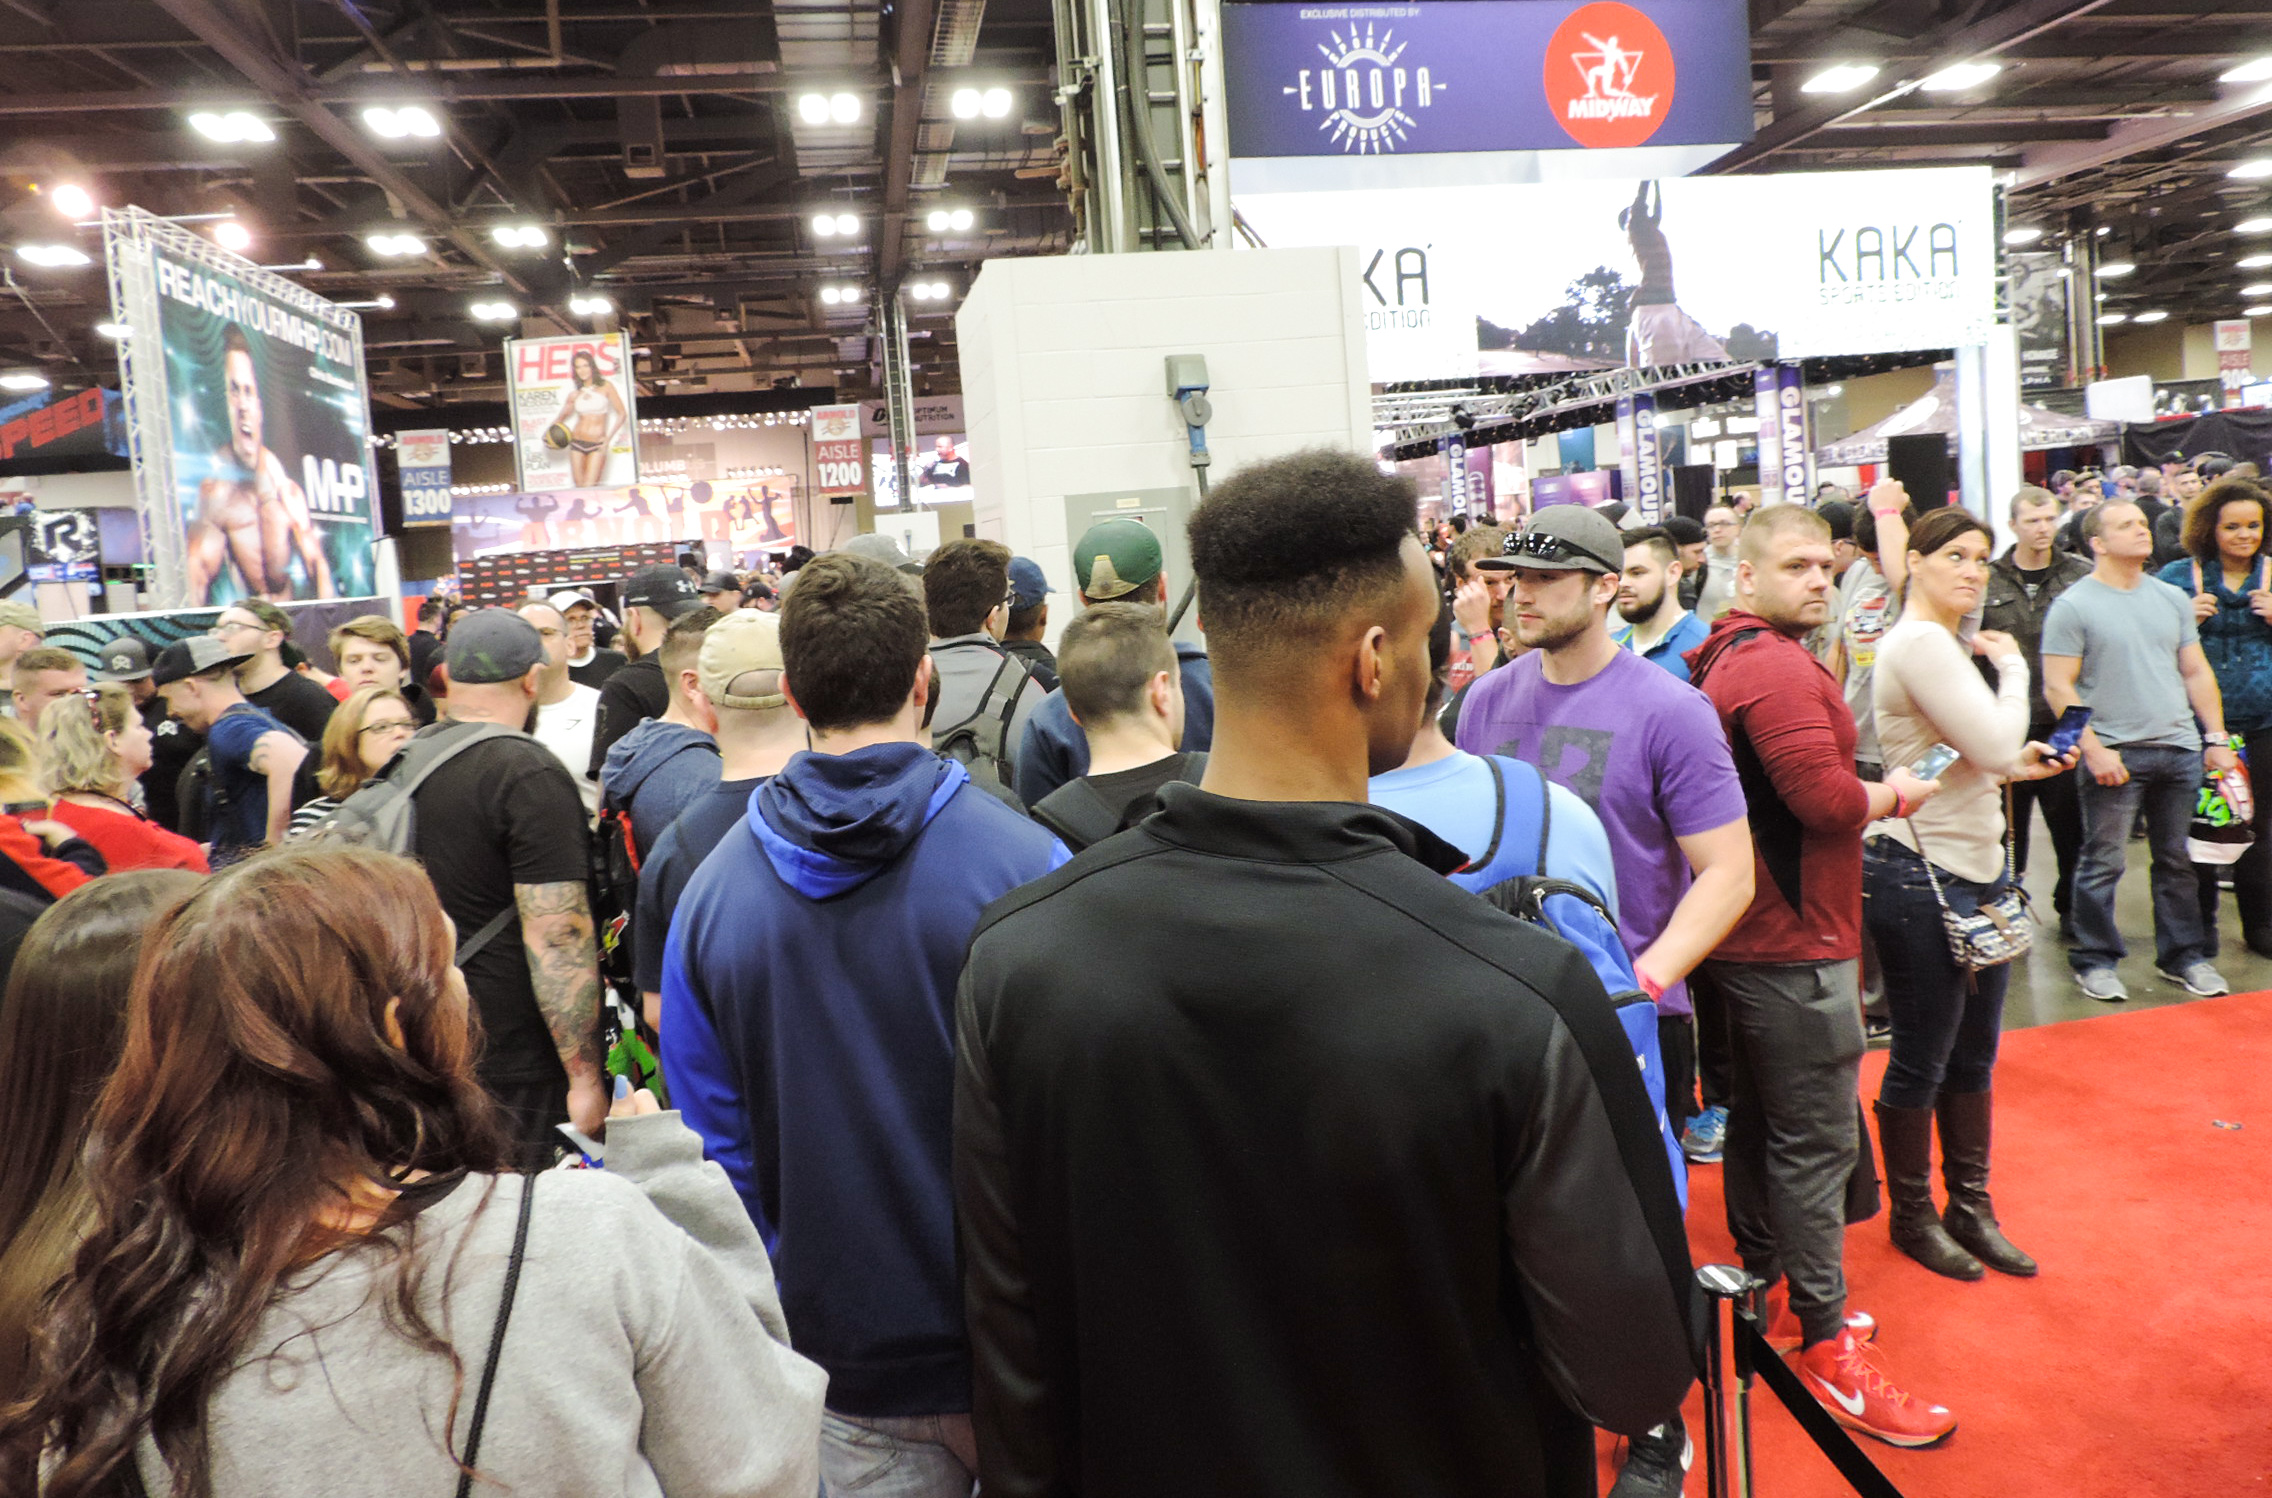 People lining up to check out the Midway Labs booth.